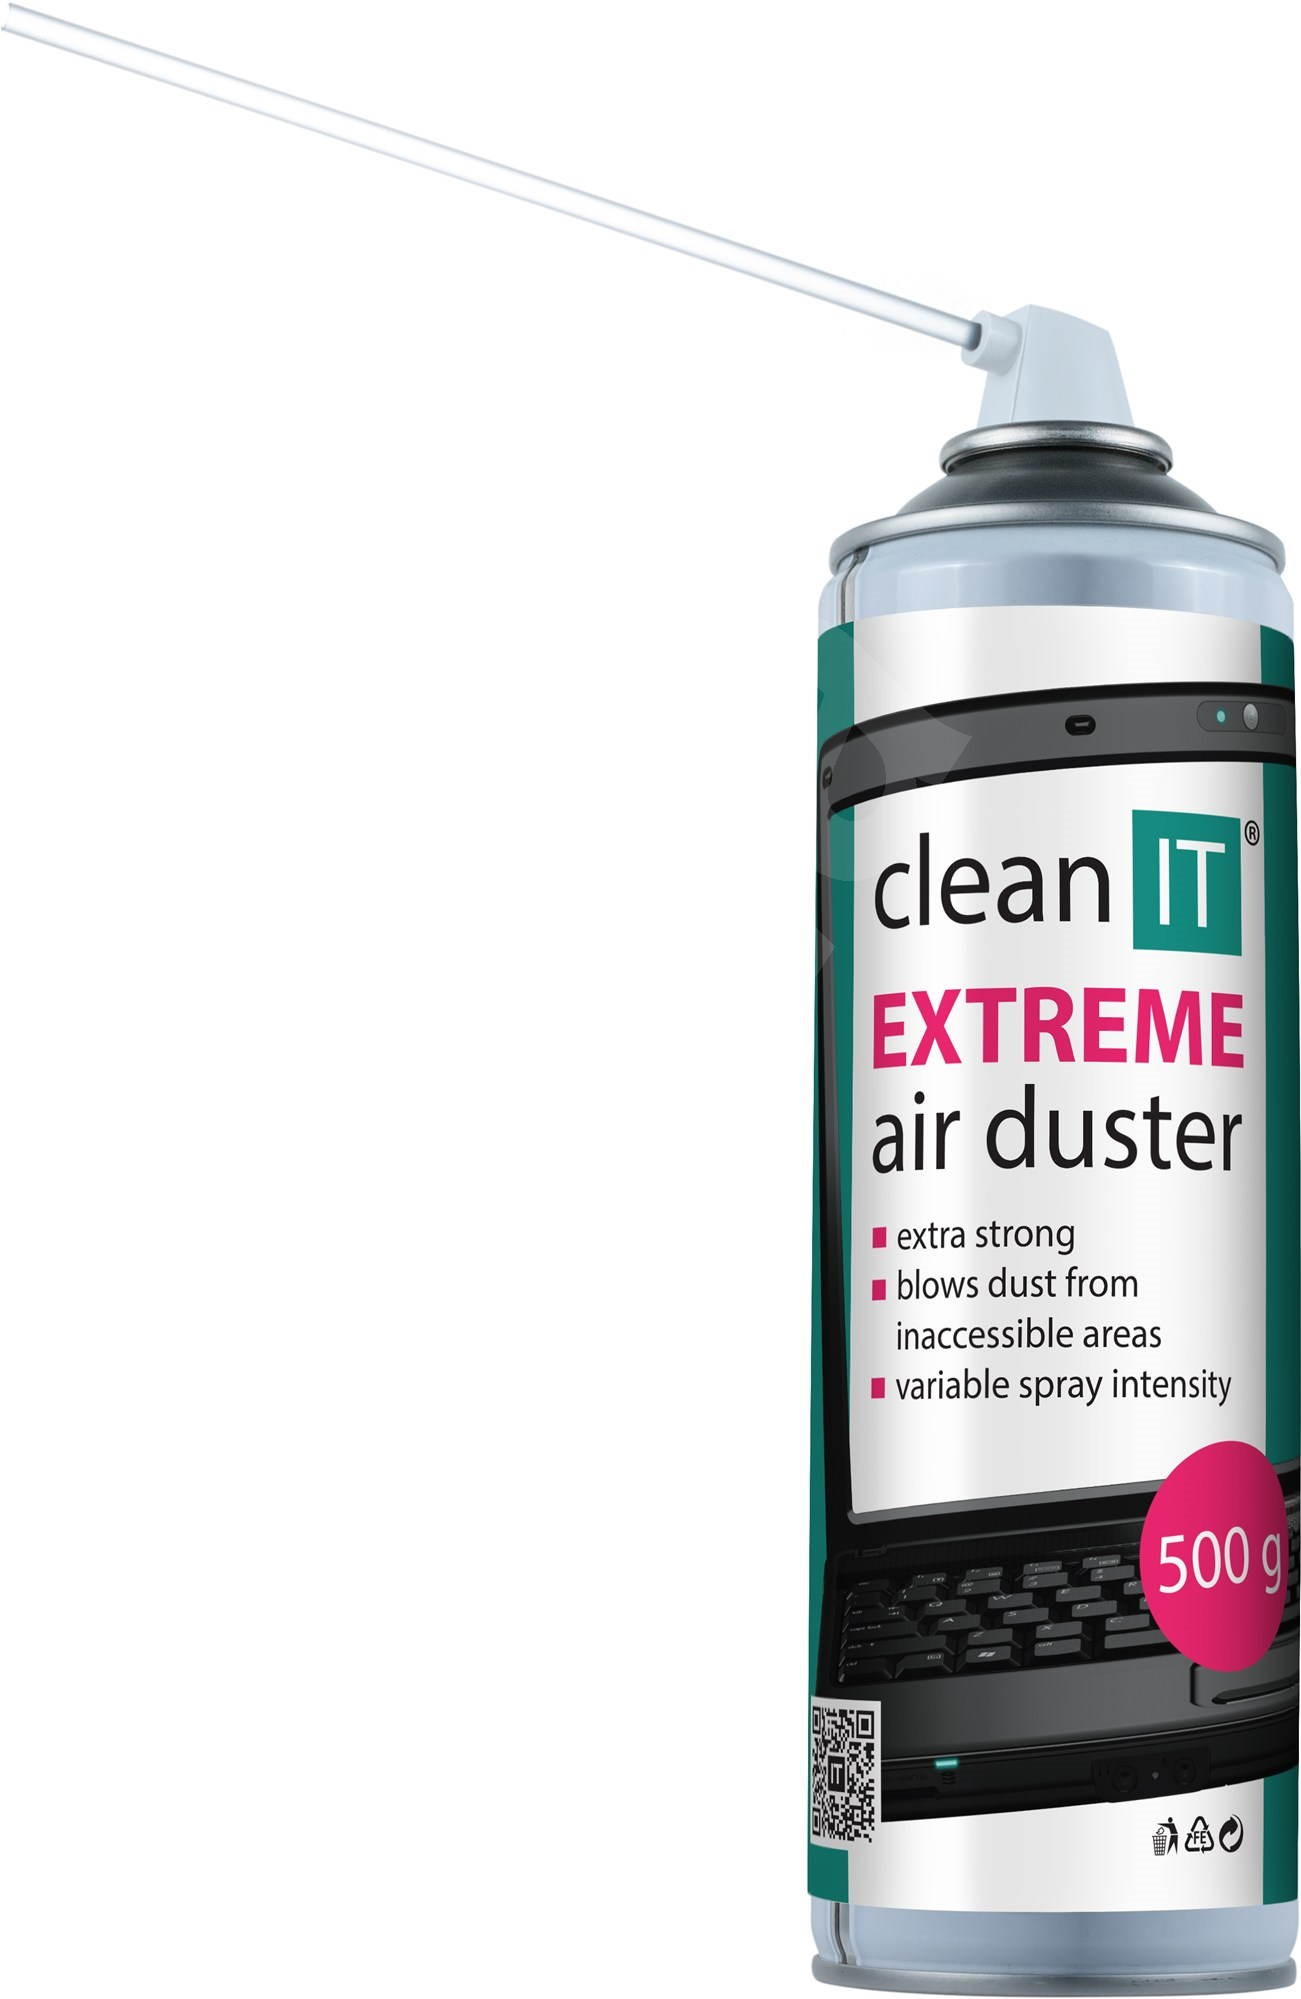 clean it extreme air duster 500g cleaner. Black Bedroom Furniture Sets. Home Design Ideas